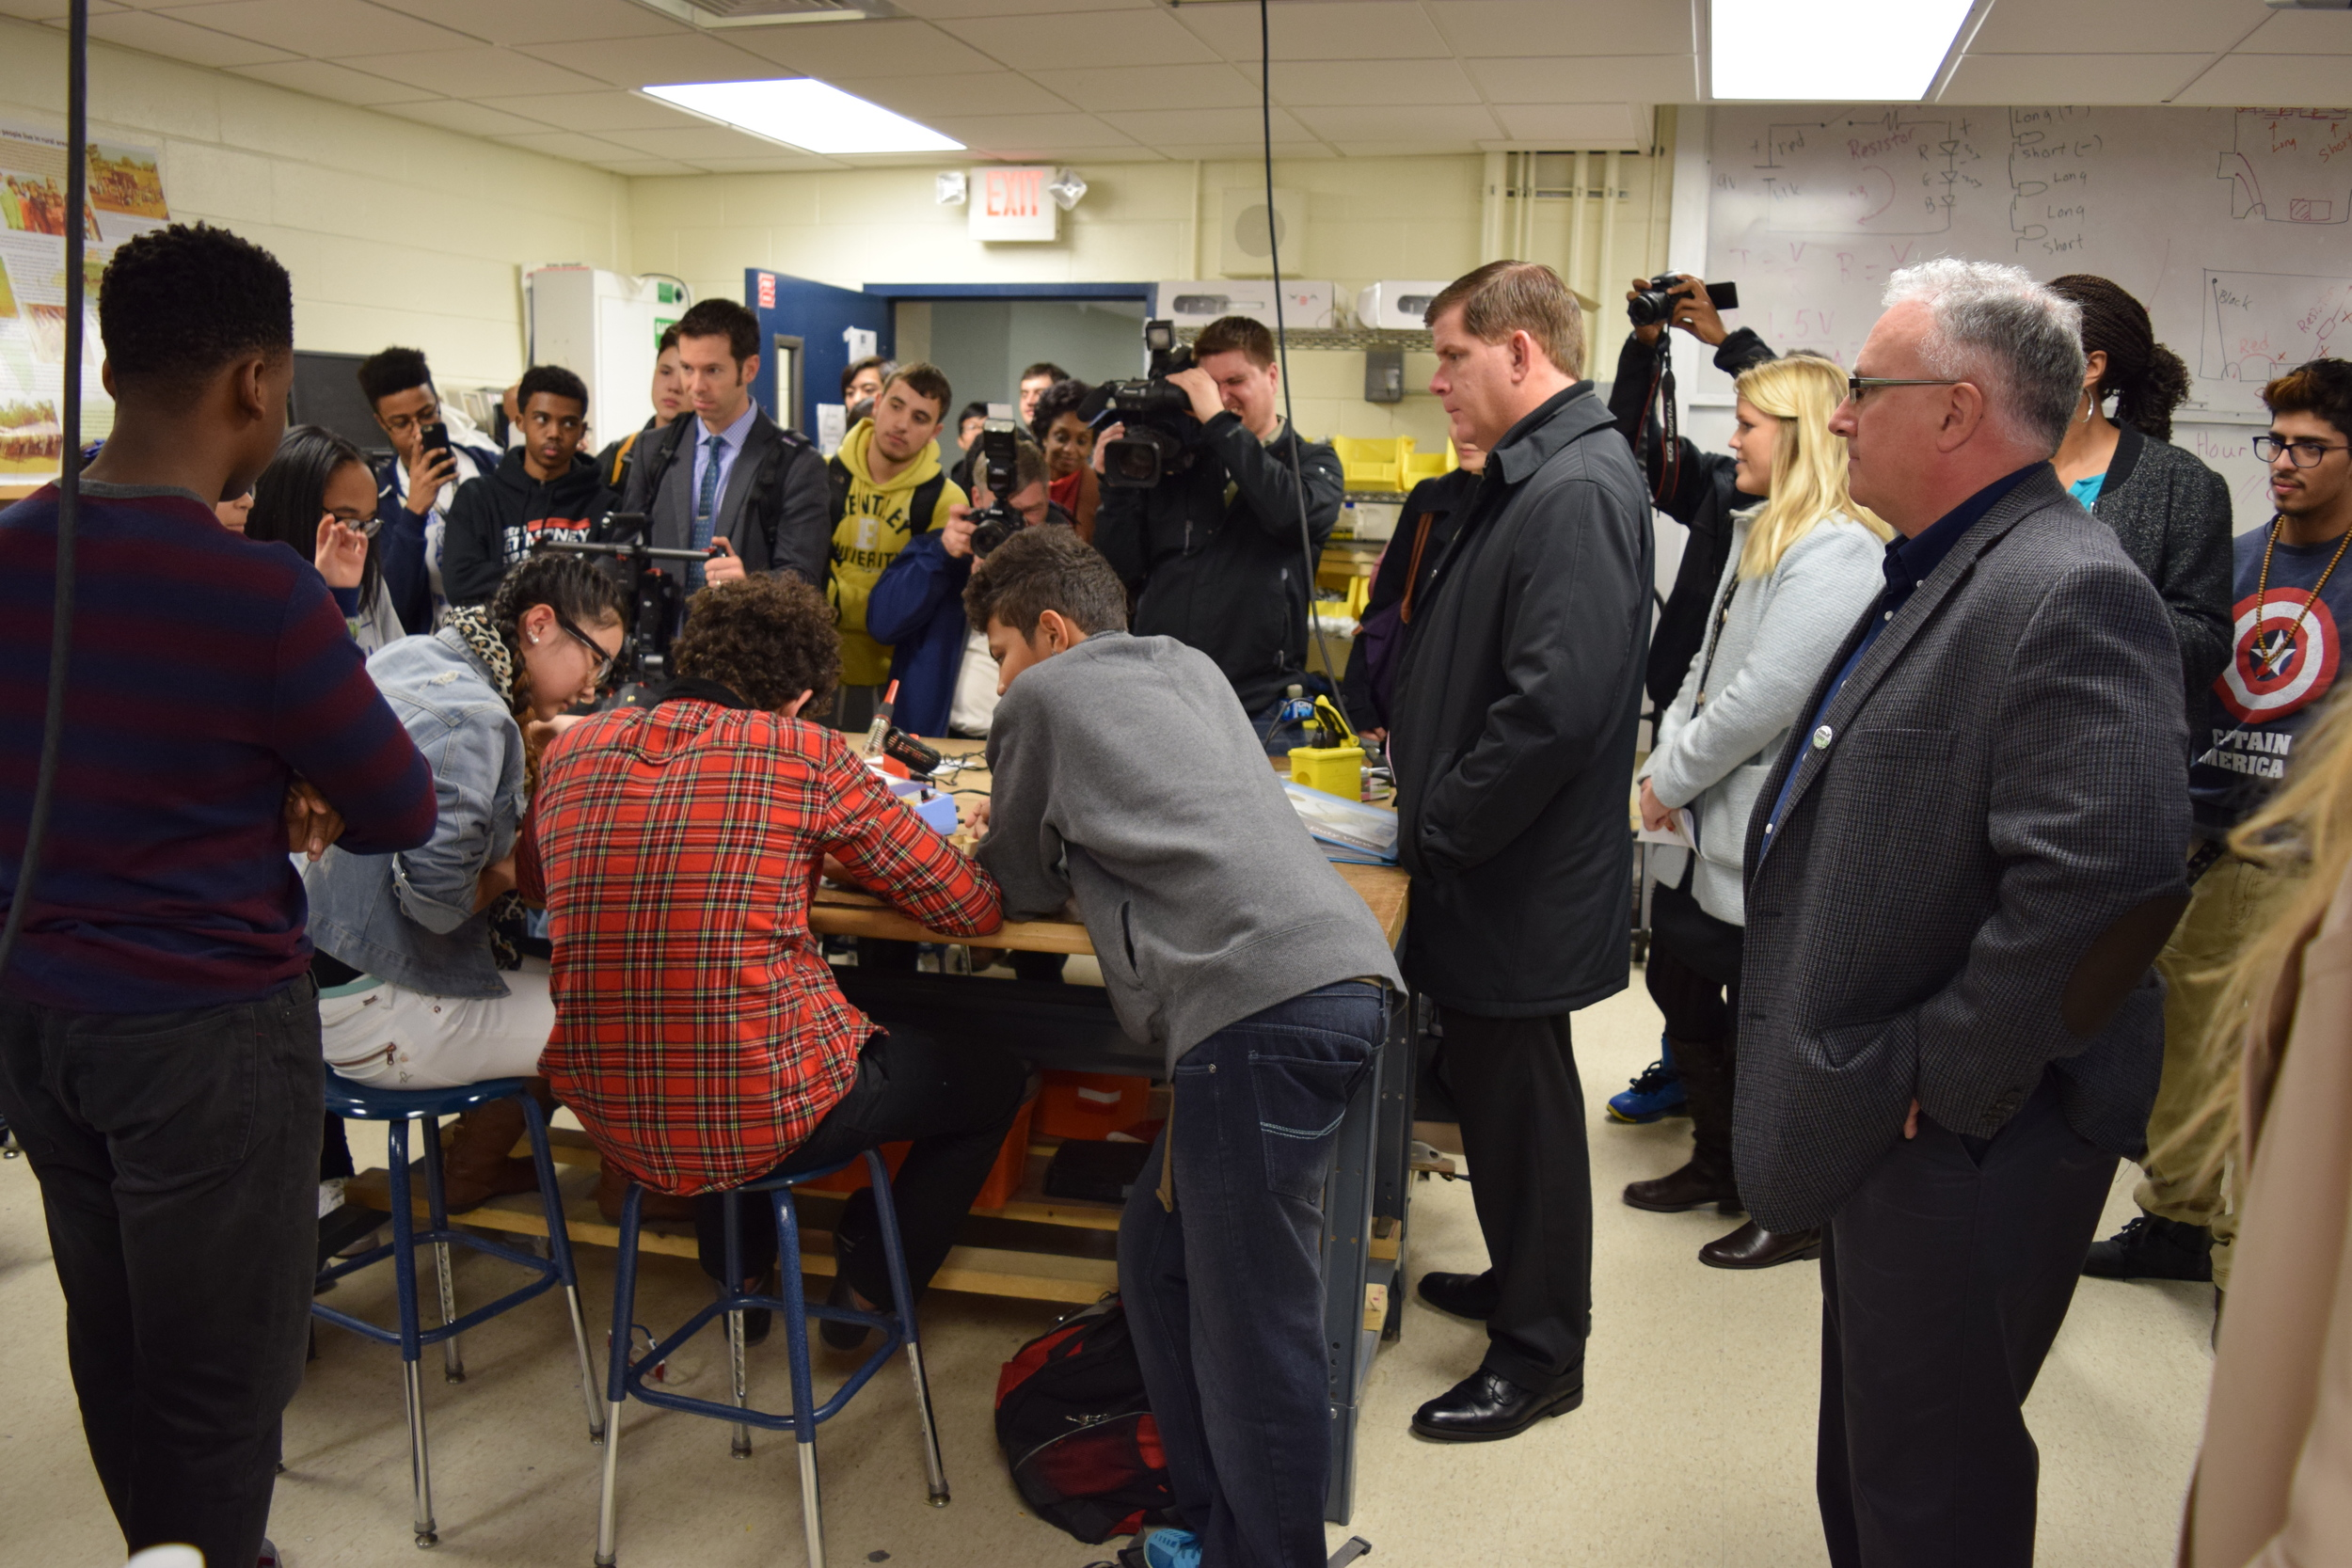 Engineering students show off the Christmas ornaments they are sautering to Mayor Walsh in the workshop the MIT Edgarton Center helped make a reality.